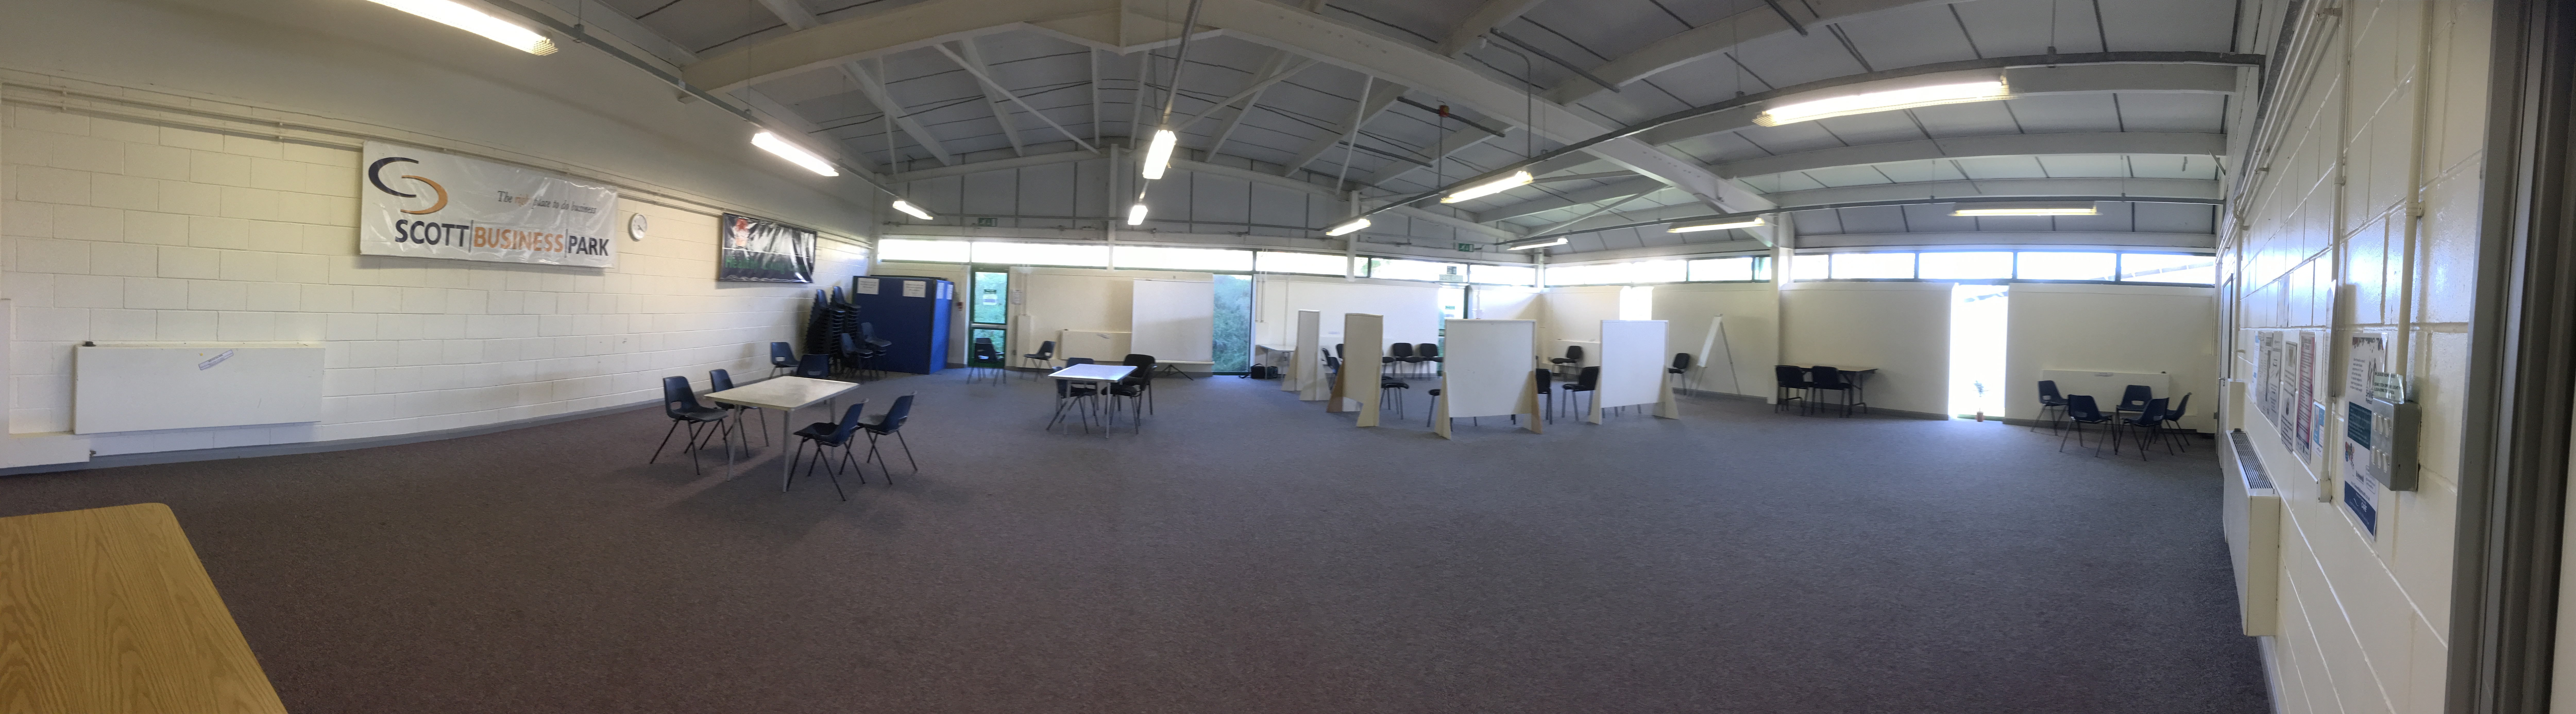 HLC Main Hall  Panorama